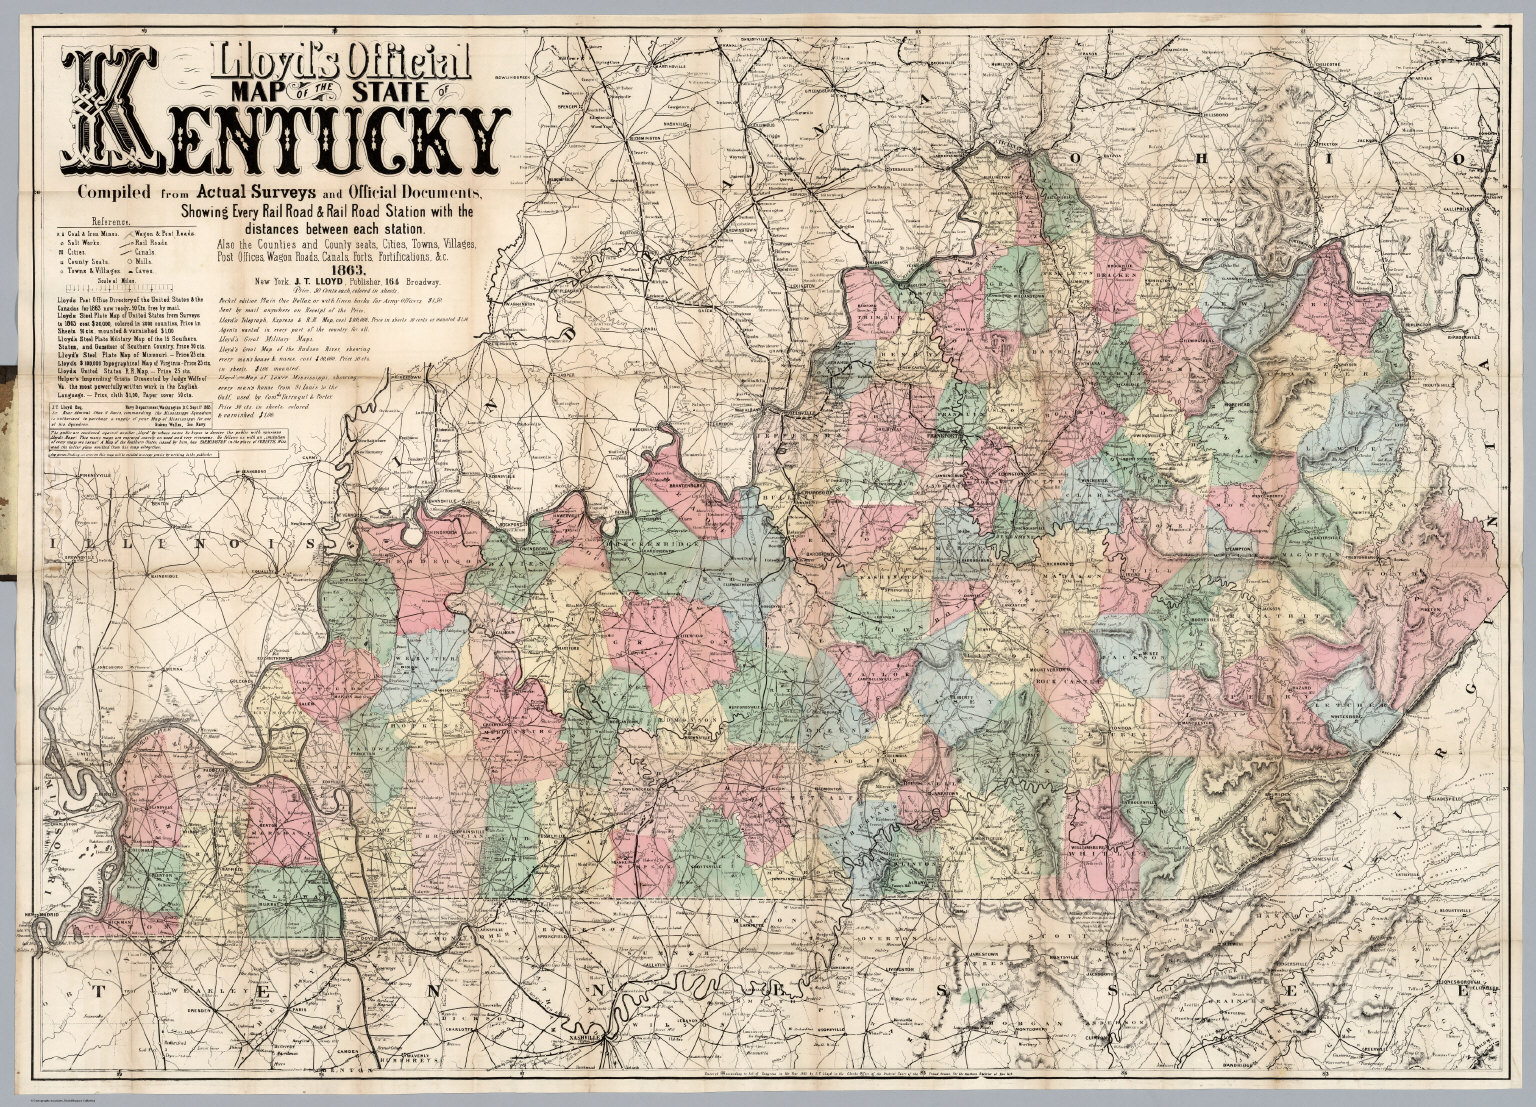 Lloyd's Official Map Of The State Of Kentucky - David Rumsey ... on pennsylvania state railroad map, ny state railroad map, oklahoma state railroad map, tennessee state railroad map, western kentucky railroad map, washington state railroad map, montana state railroad map, illinois state railroad map, louisiana state railroad map, iowa state railroad map, kentucky dot railroad map, dawkins rail trail map, new york state railroad map, missouri state railroad map, kentucky state house district map, texas state railroad map, kentucky state road map,